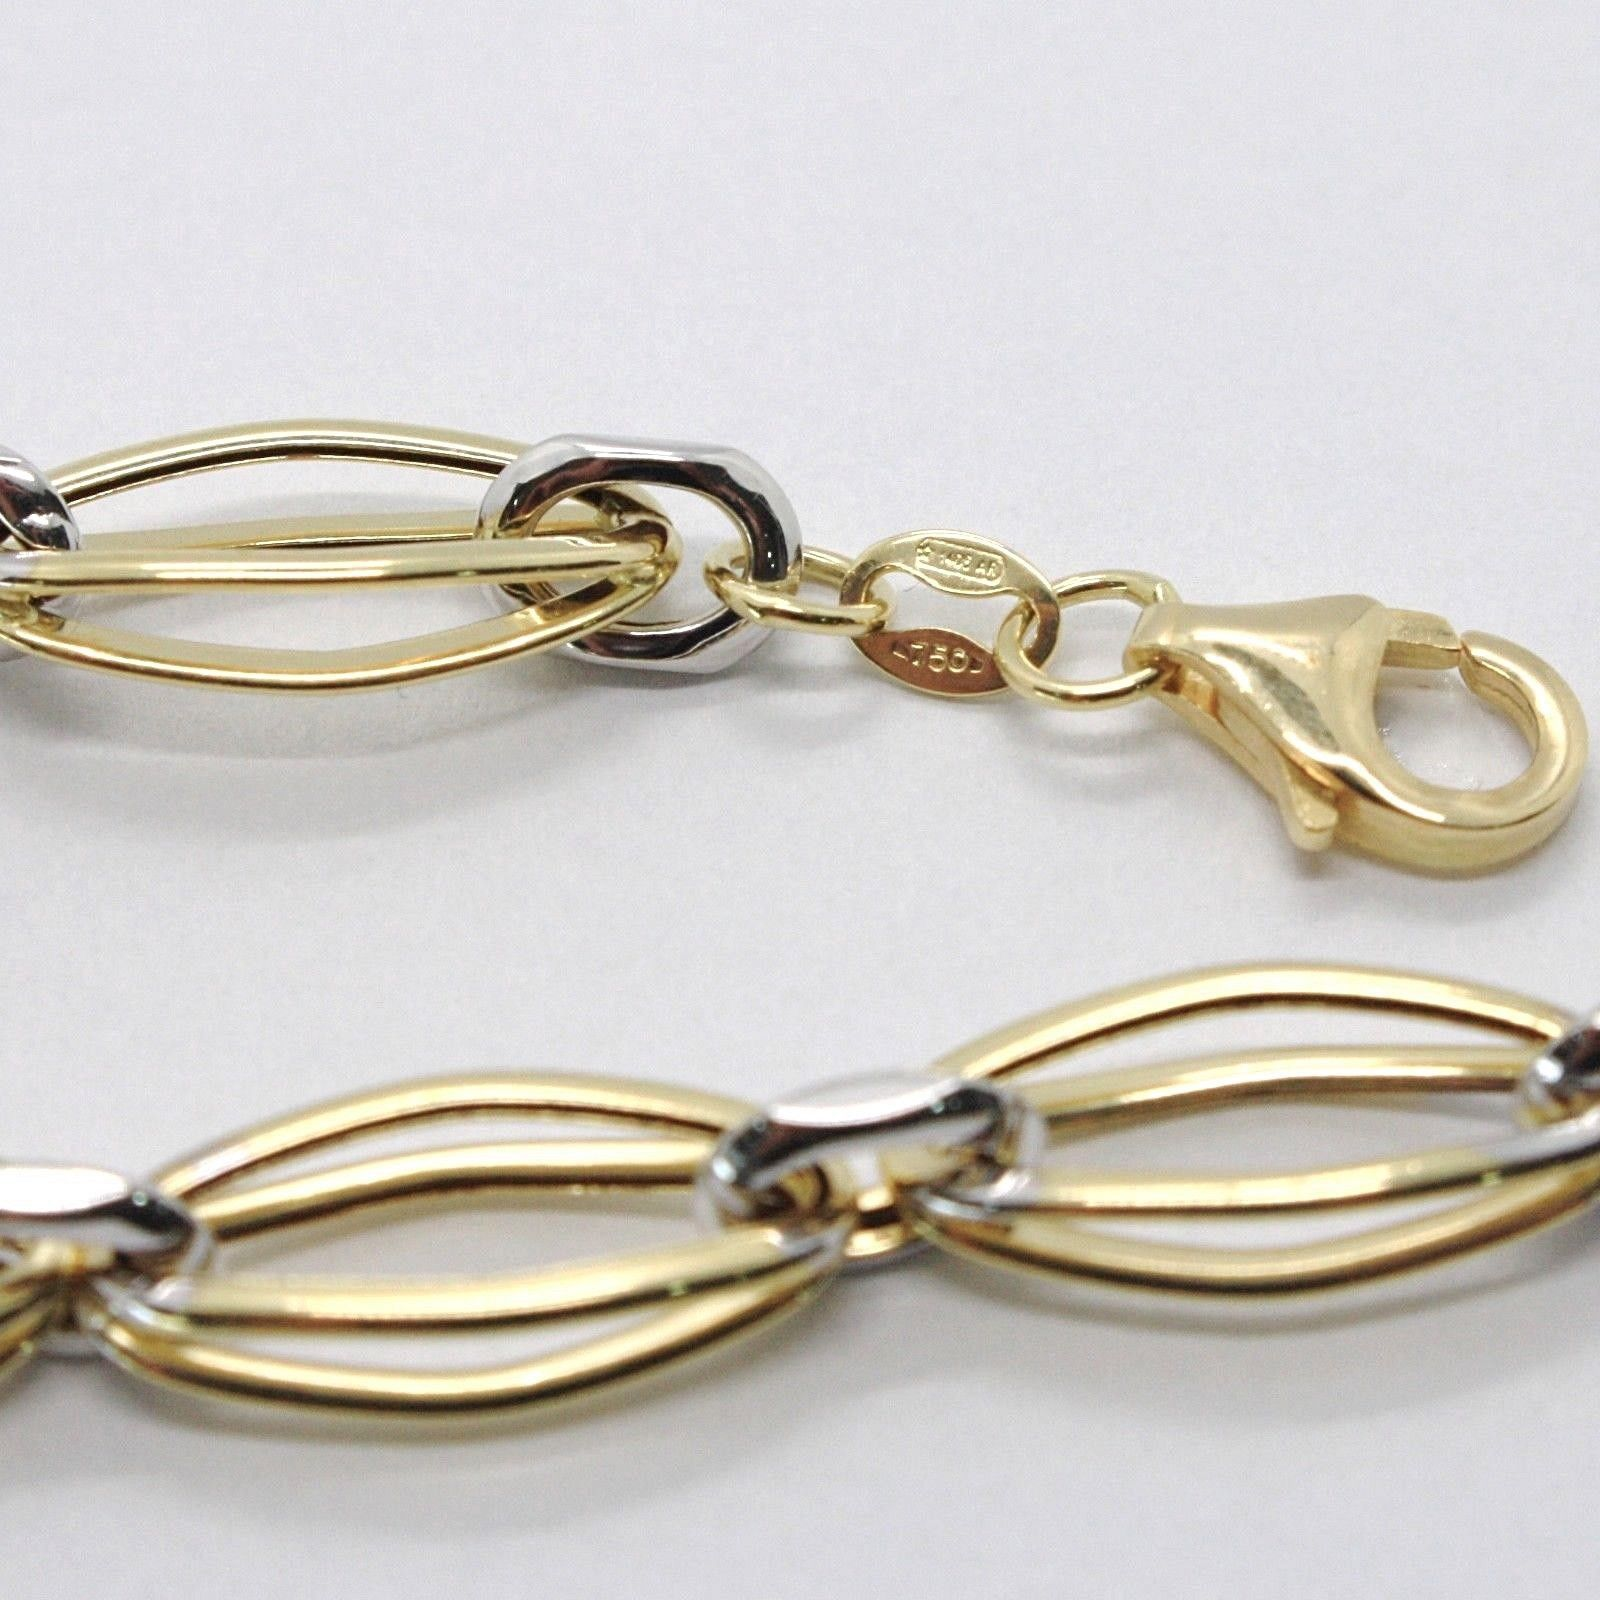 BRACELET YELLOW GOLD WHITE 18K 750, DOUBLE OVALS ALTERNATING, MADE IN ITALY